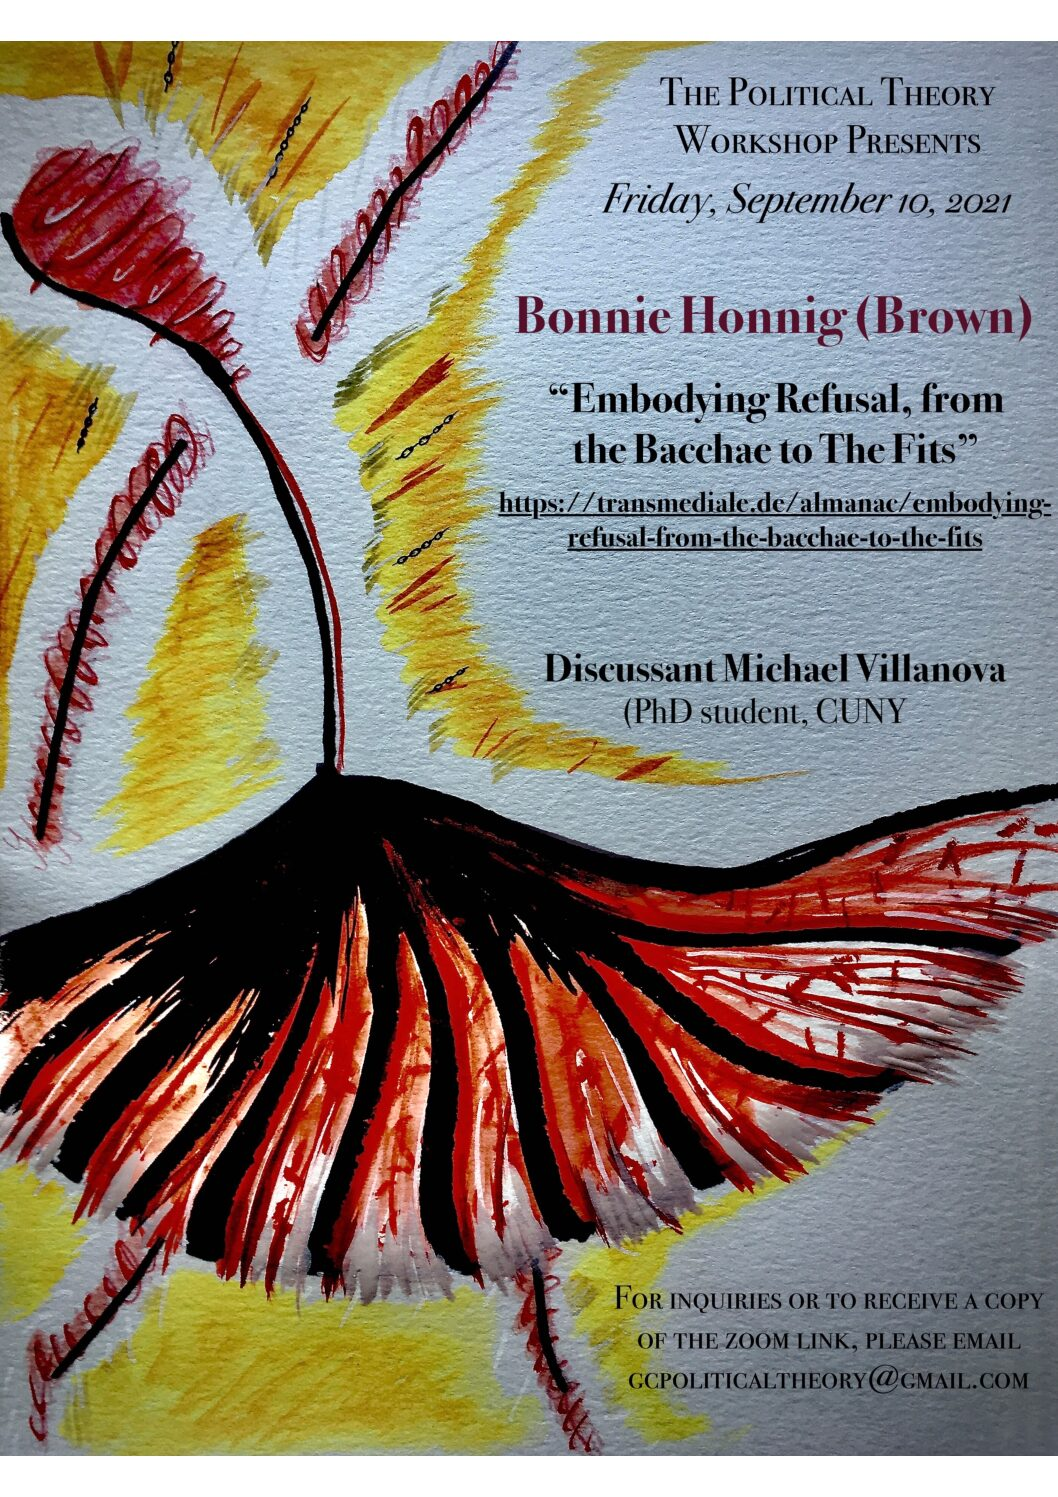 """Political Theory Workshop: Bonnie Honig, """"Embodying Refusal, from the Bacchae to The Fits,"""" Friday, September 10, 3:00-5:00PM"""